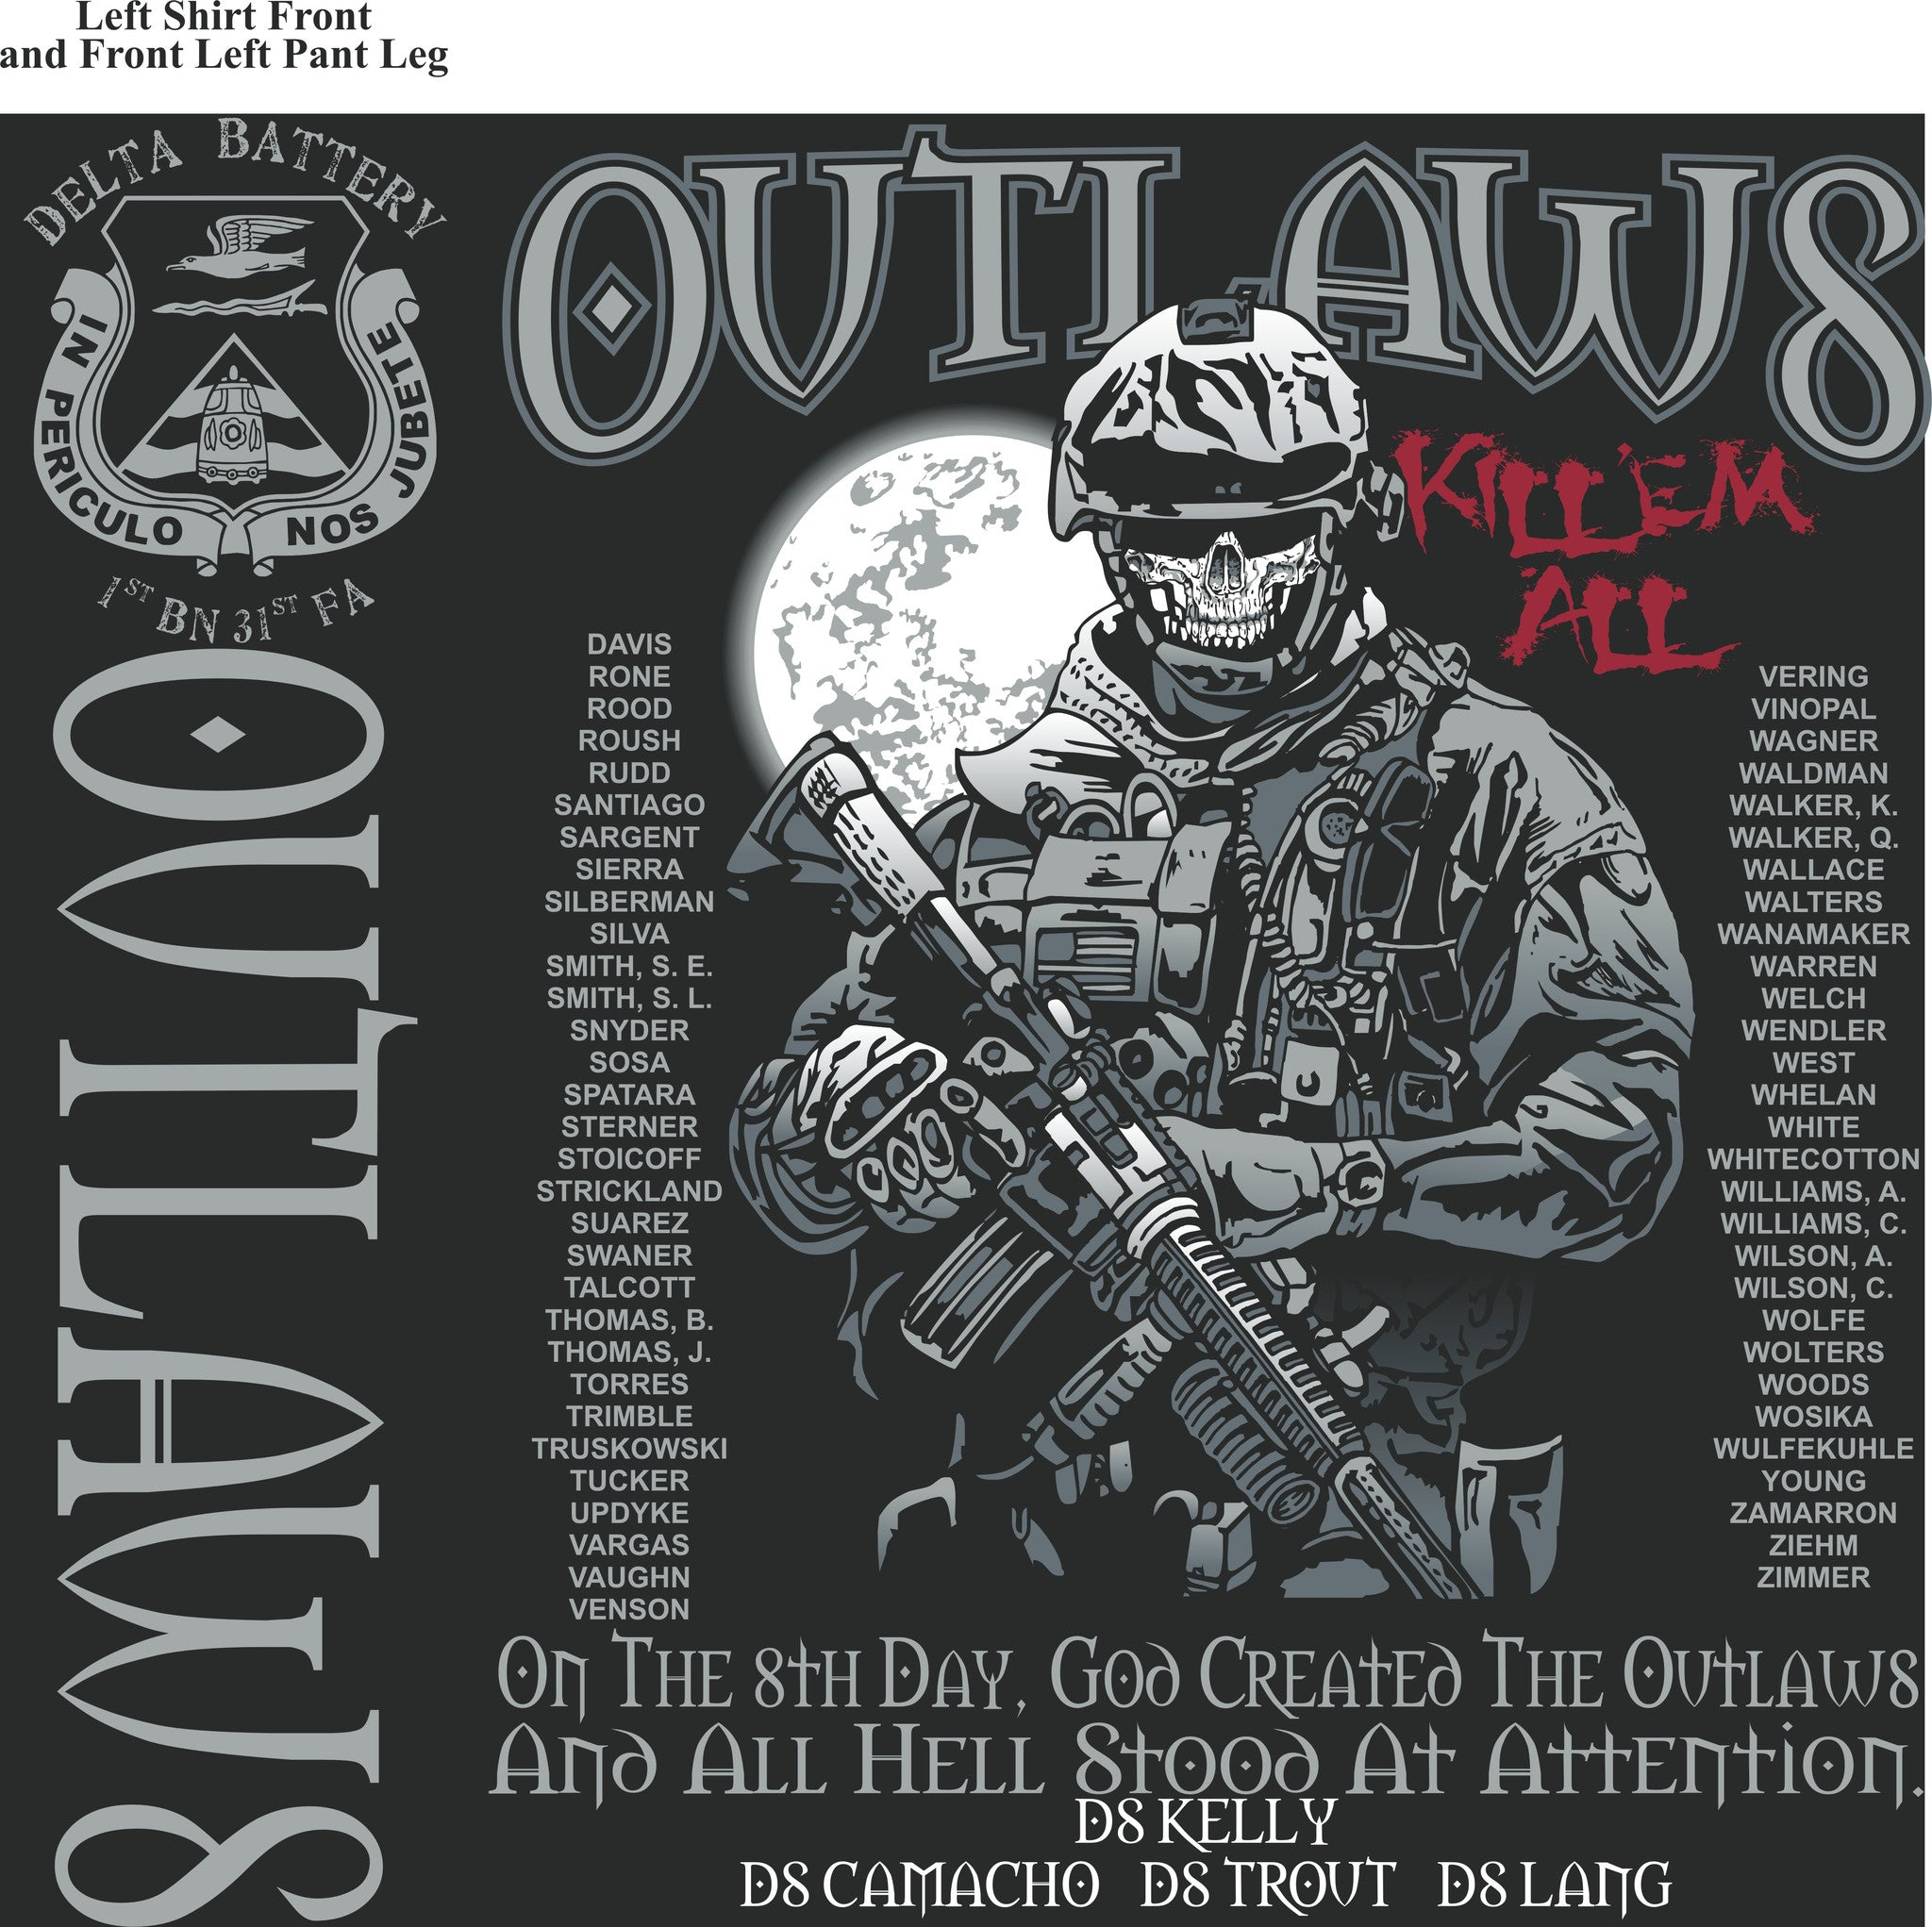 Platoon Shirts DELTA 1st 31st OUTLAWS SEPT 2015